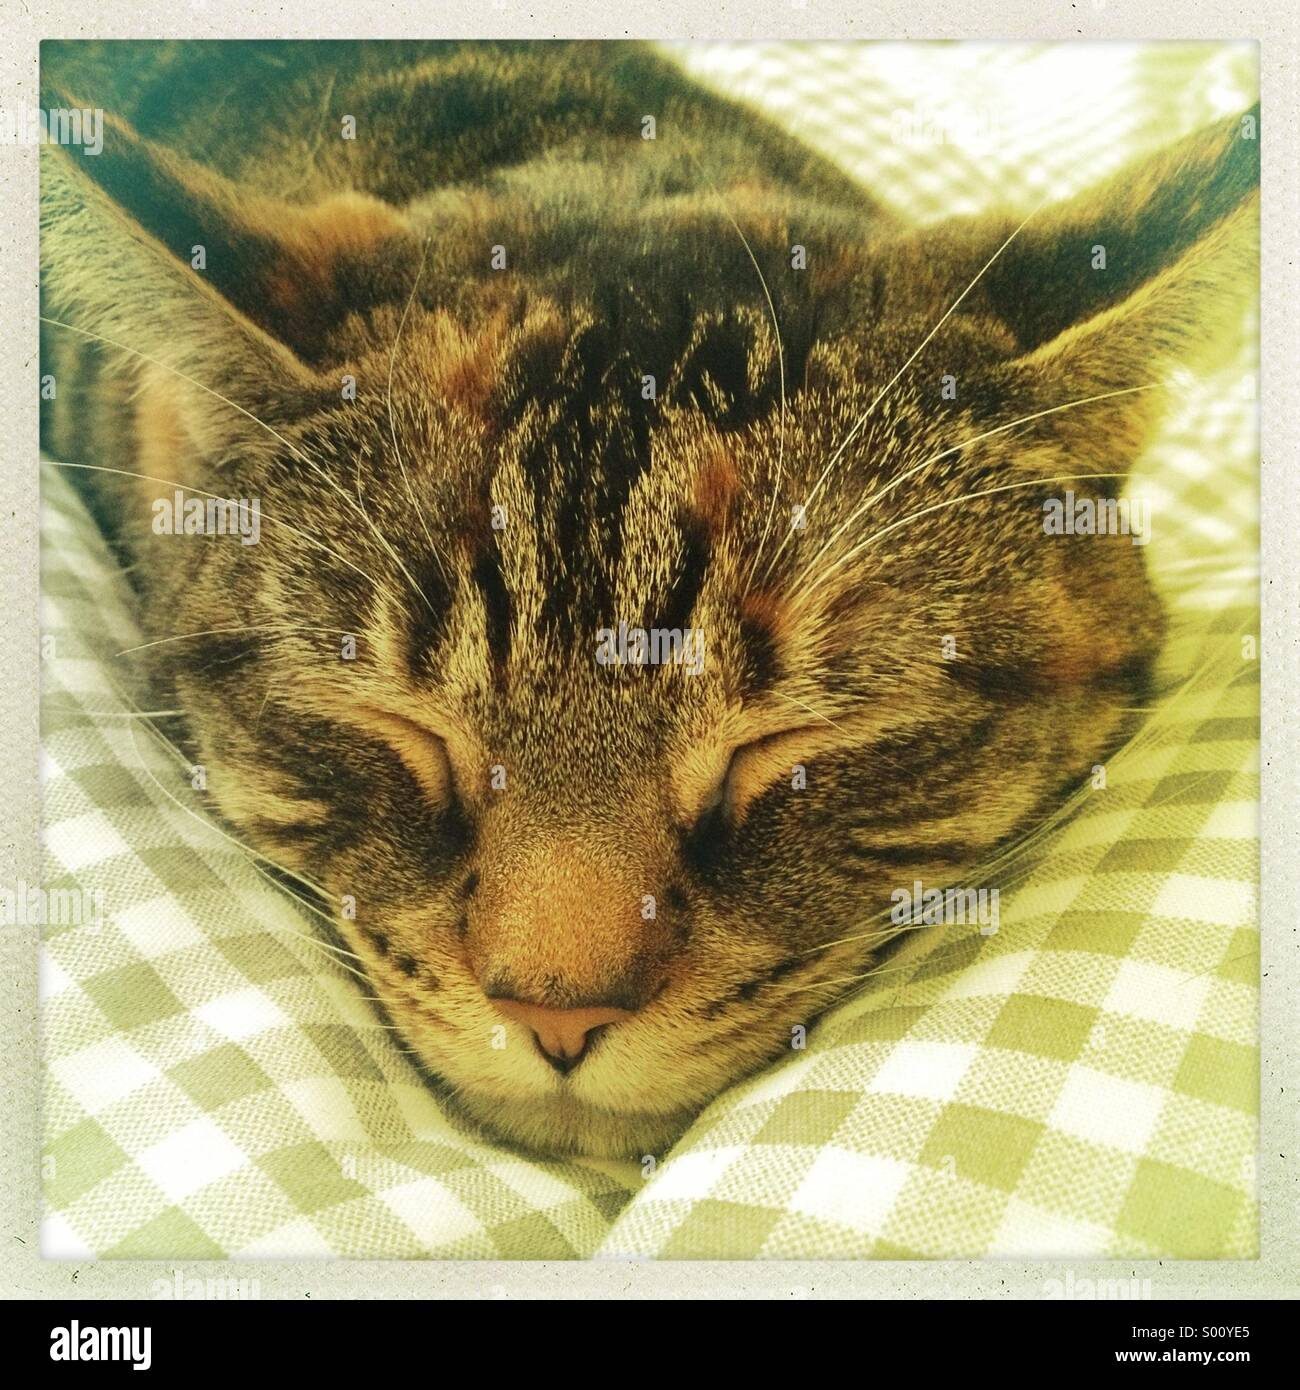 Sleeping tabby cat Immagini Stock